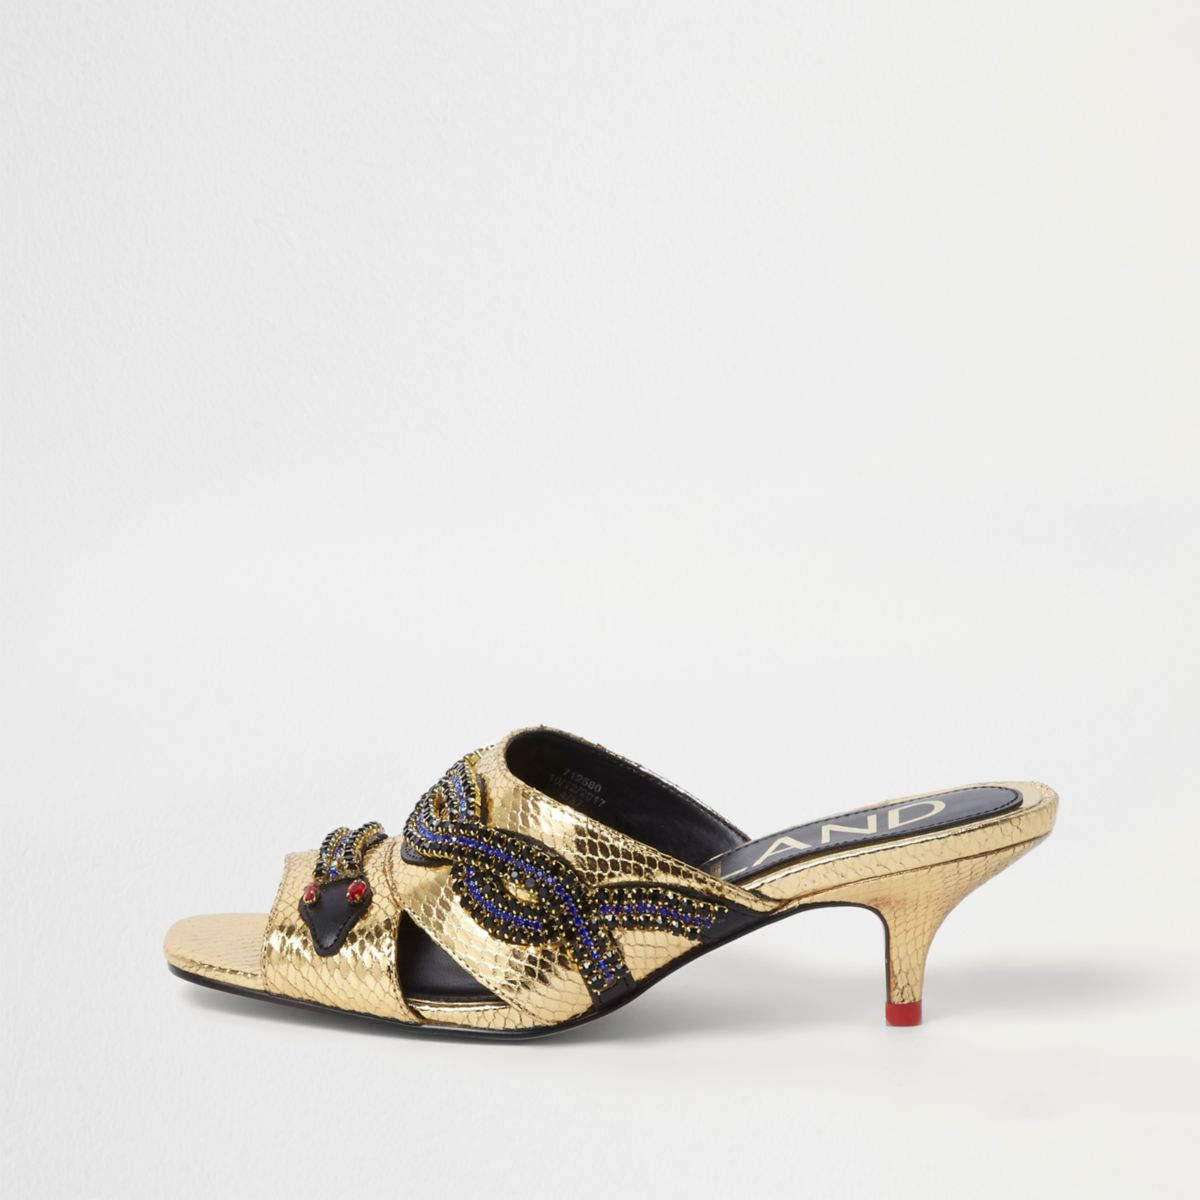 River Island Mules - white/gold